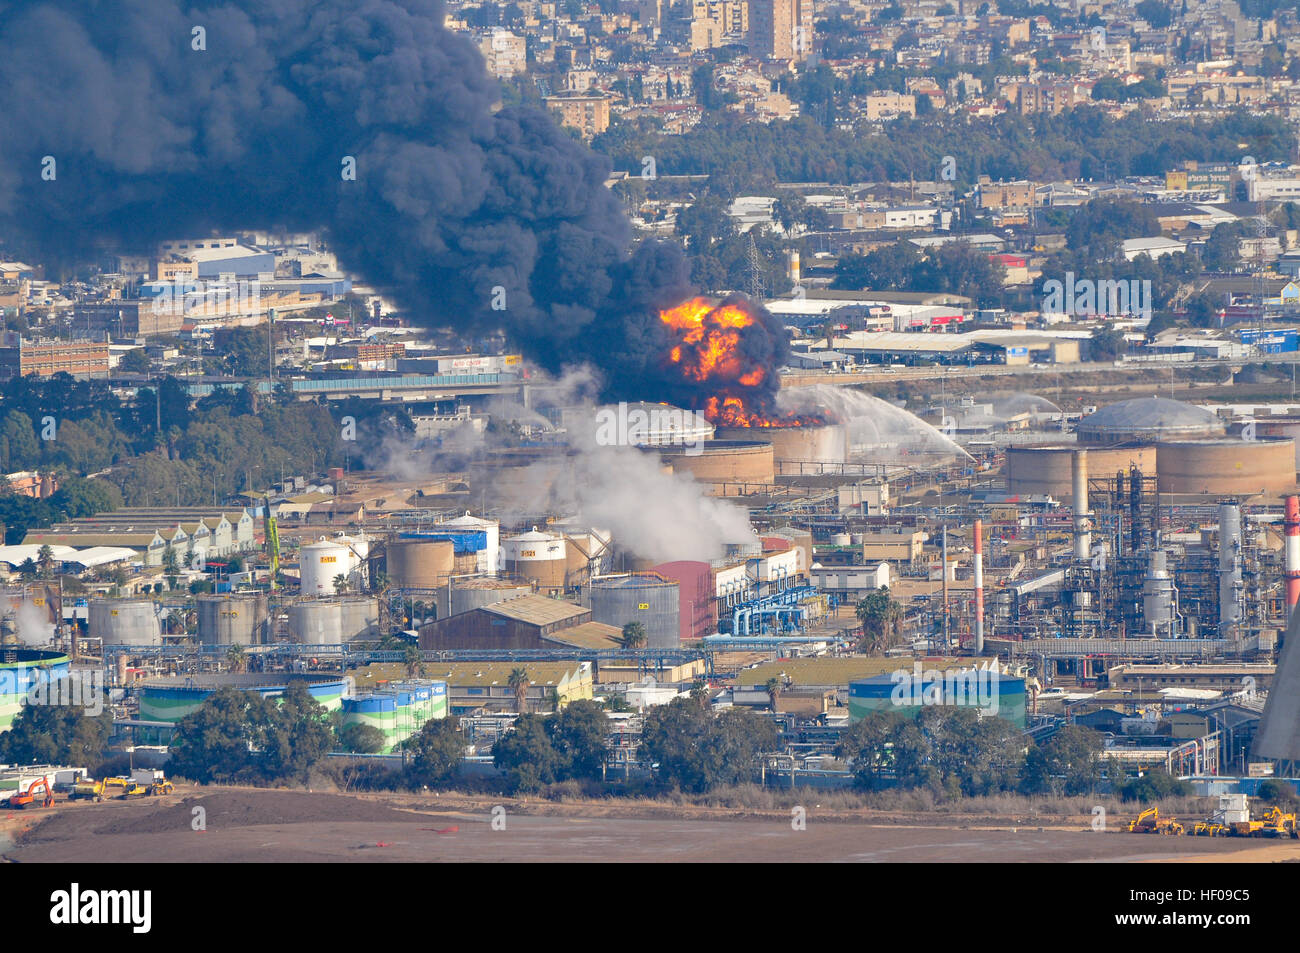 Haifa, Israel. 25th December, 2016. Firefighters extinguish Haifa Oil Refineries fire, after all-day blaze on December - Stock Image